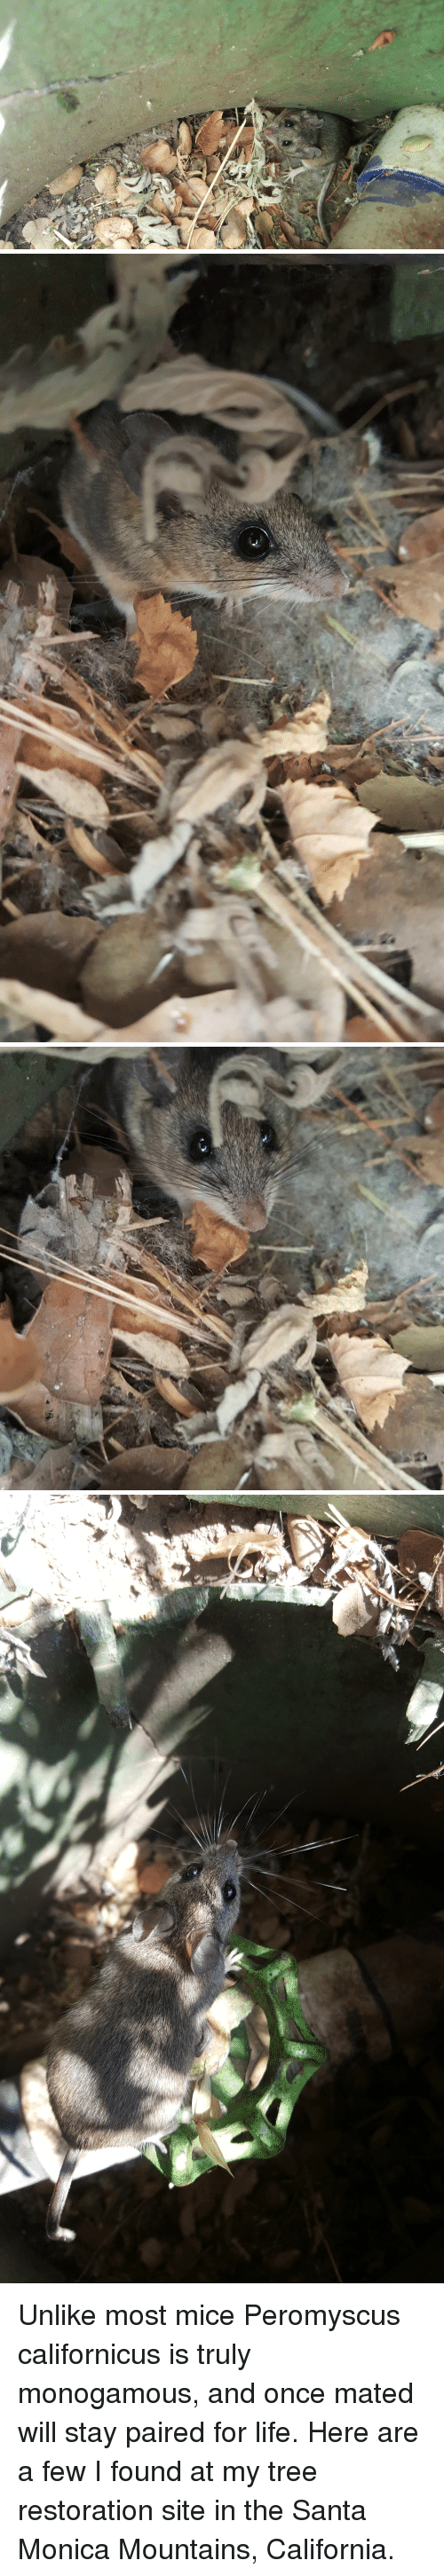 Life, California, and Mouse: Unlike most mice Peromyscus californicus is truly monogamous, and once mated will stay paired for life. Here are a few I found at my tree restoration site in the Santa Monica Mountains, California.